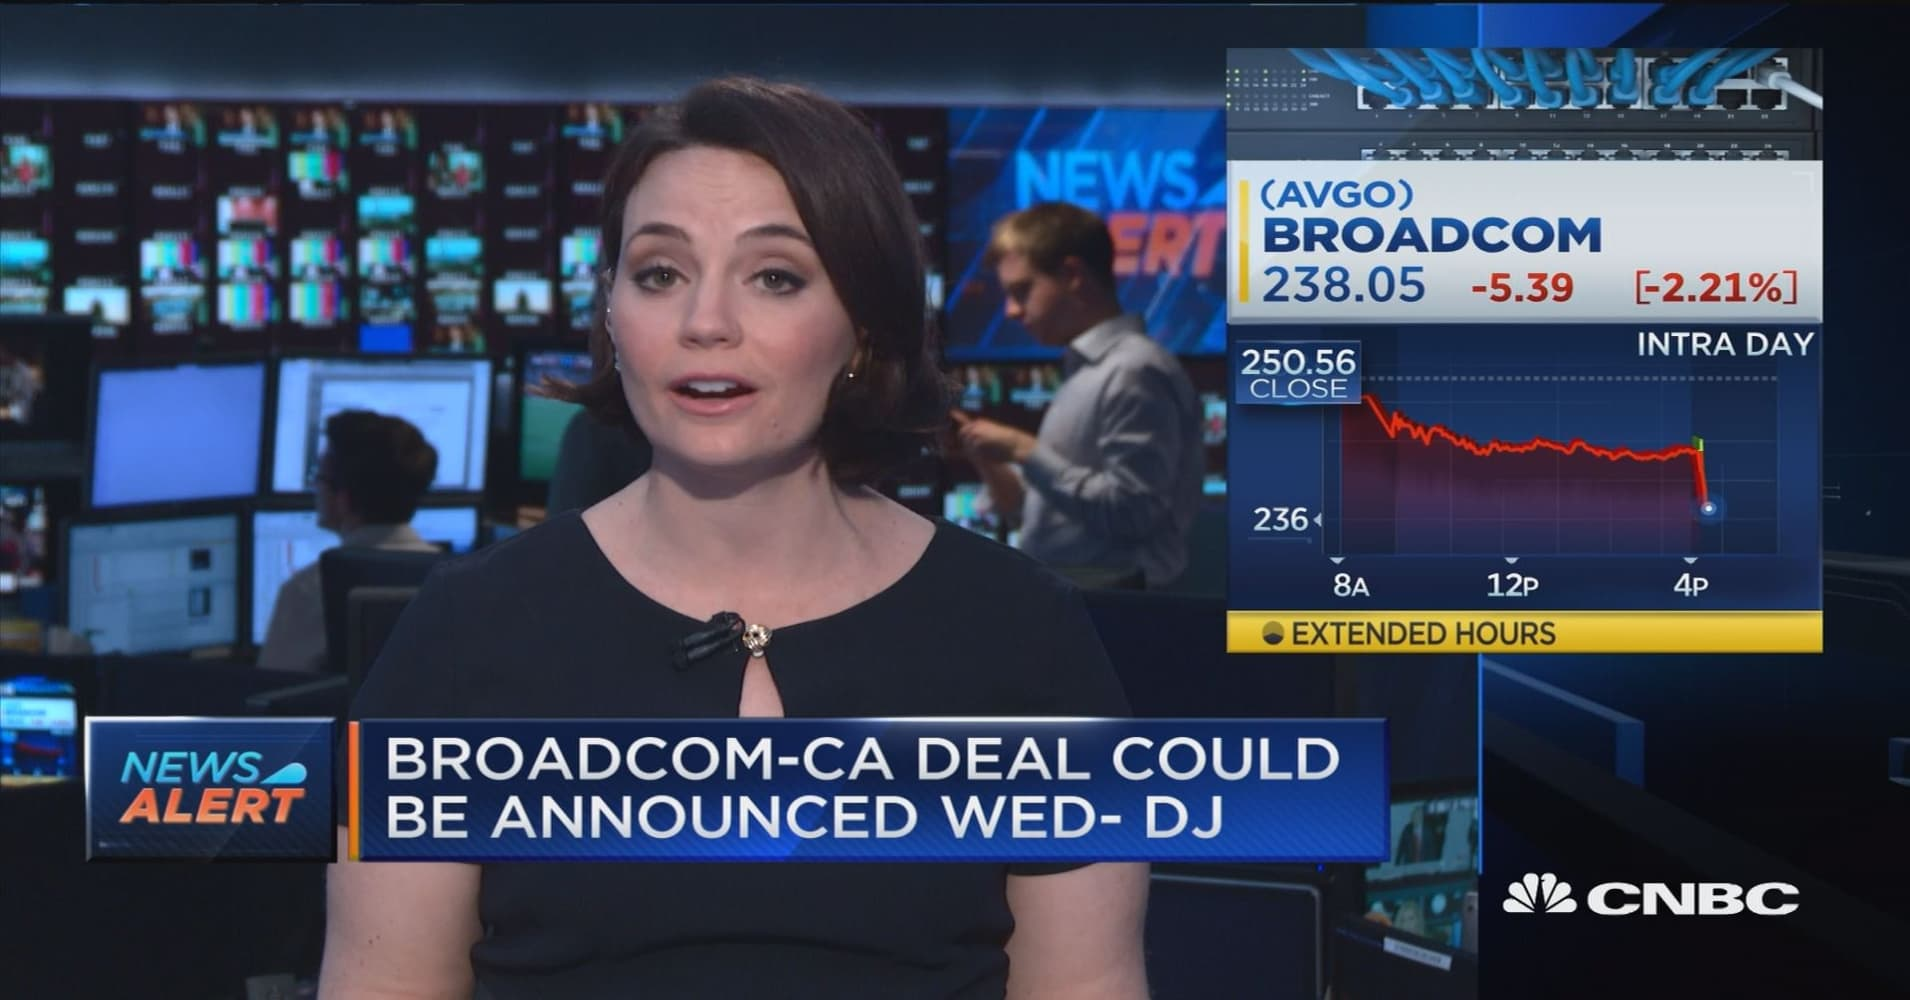 Broadcom reaches deal to acquire CA Technologies for $18.9 billion in cash